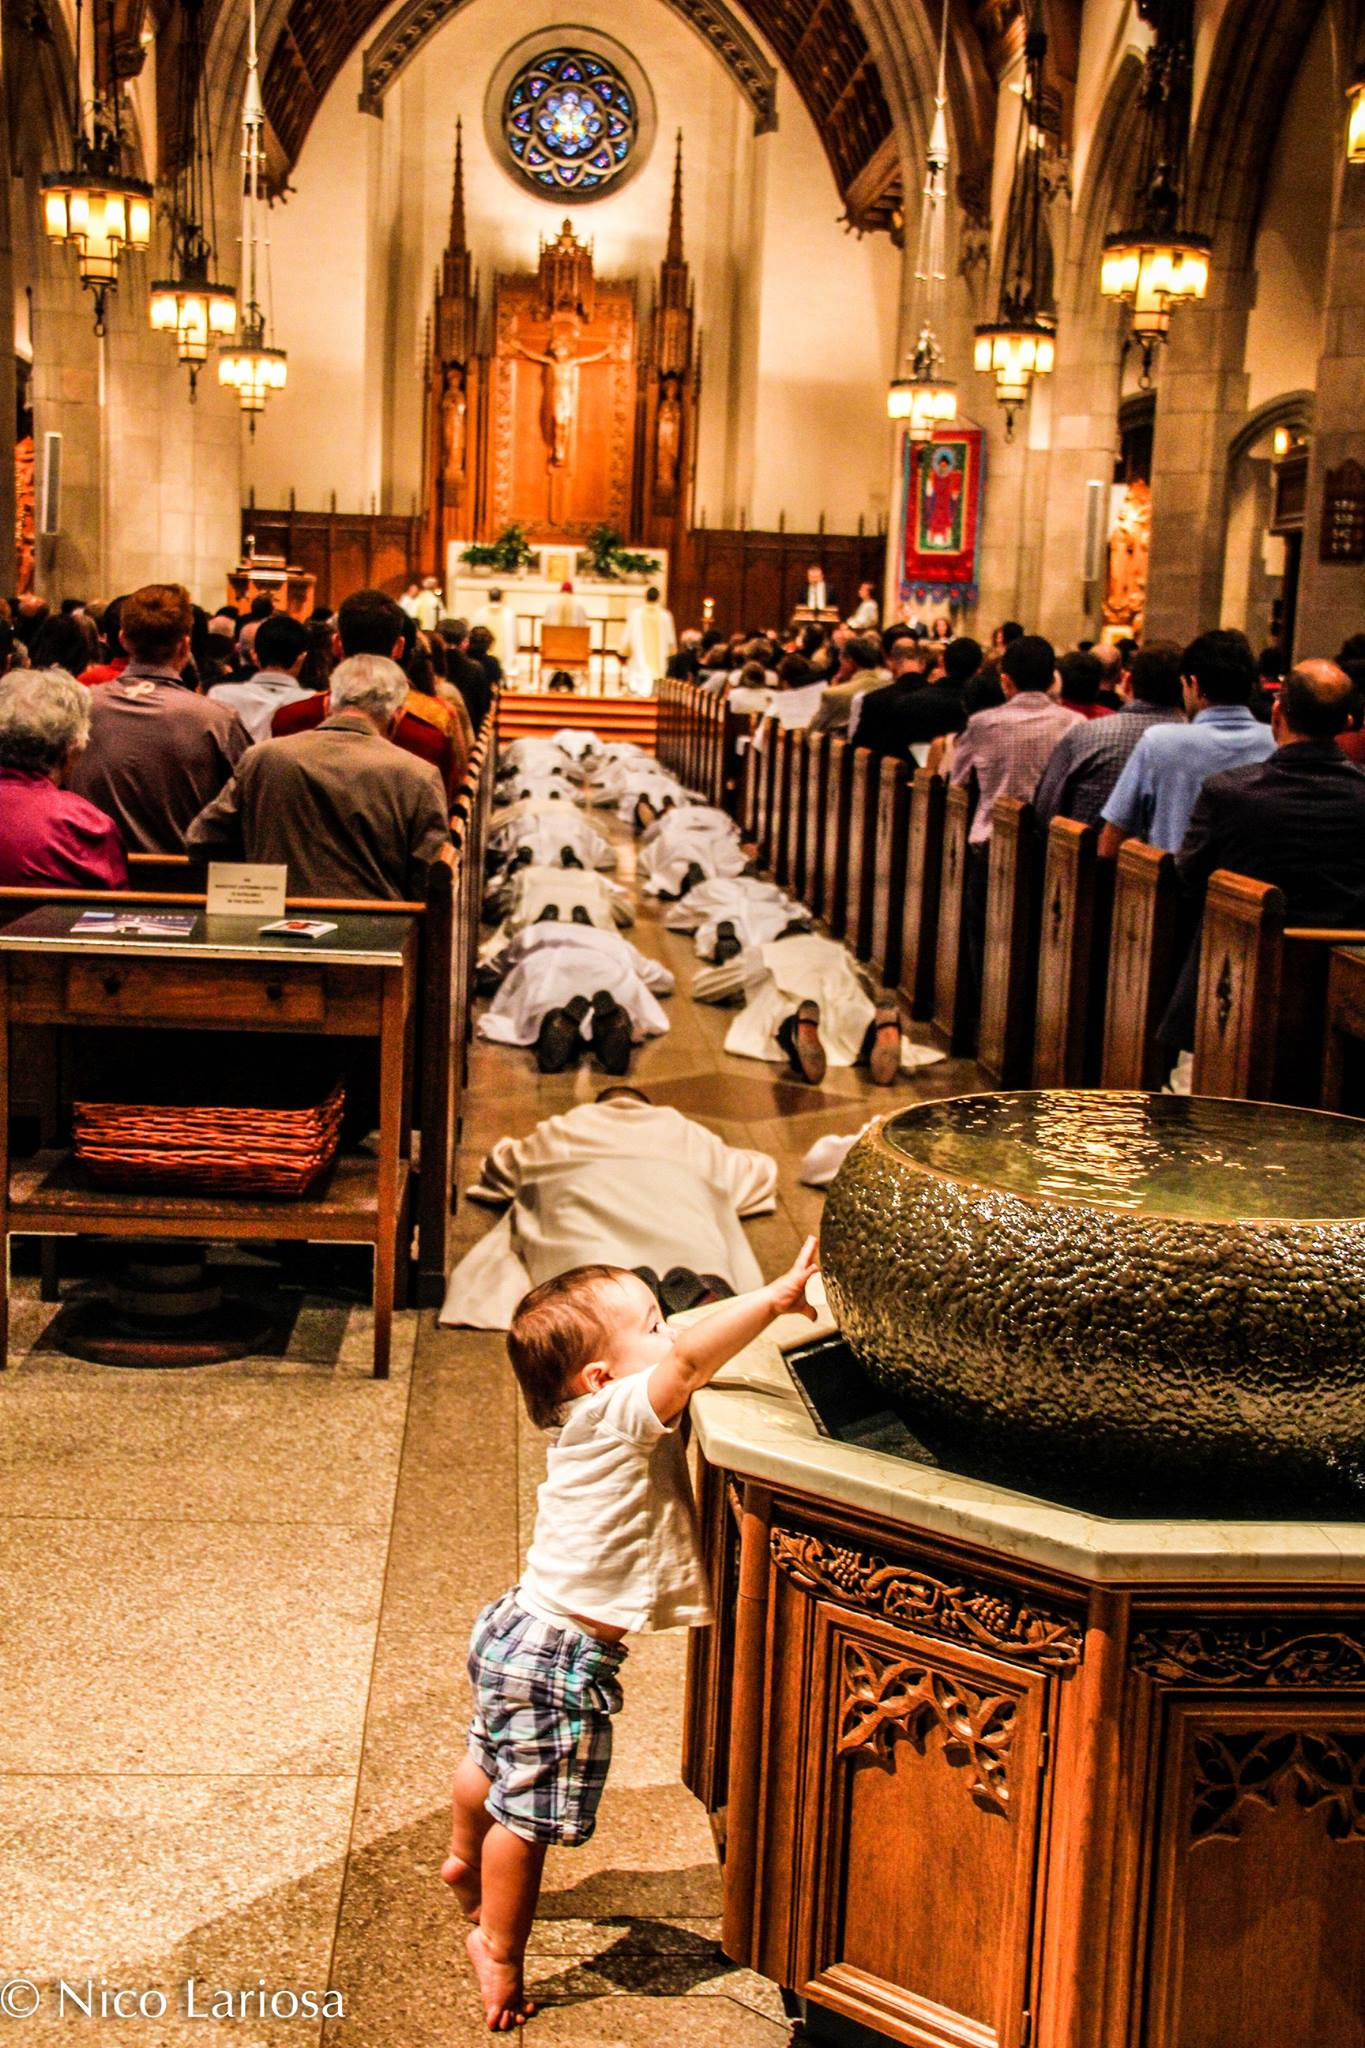 prostration-and-baptismal-font-nico-lariosa-with-permission